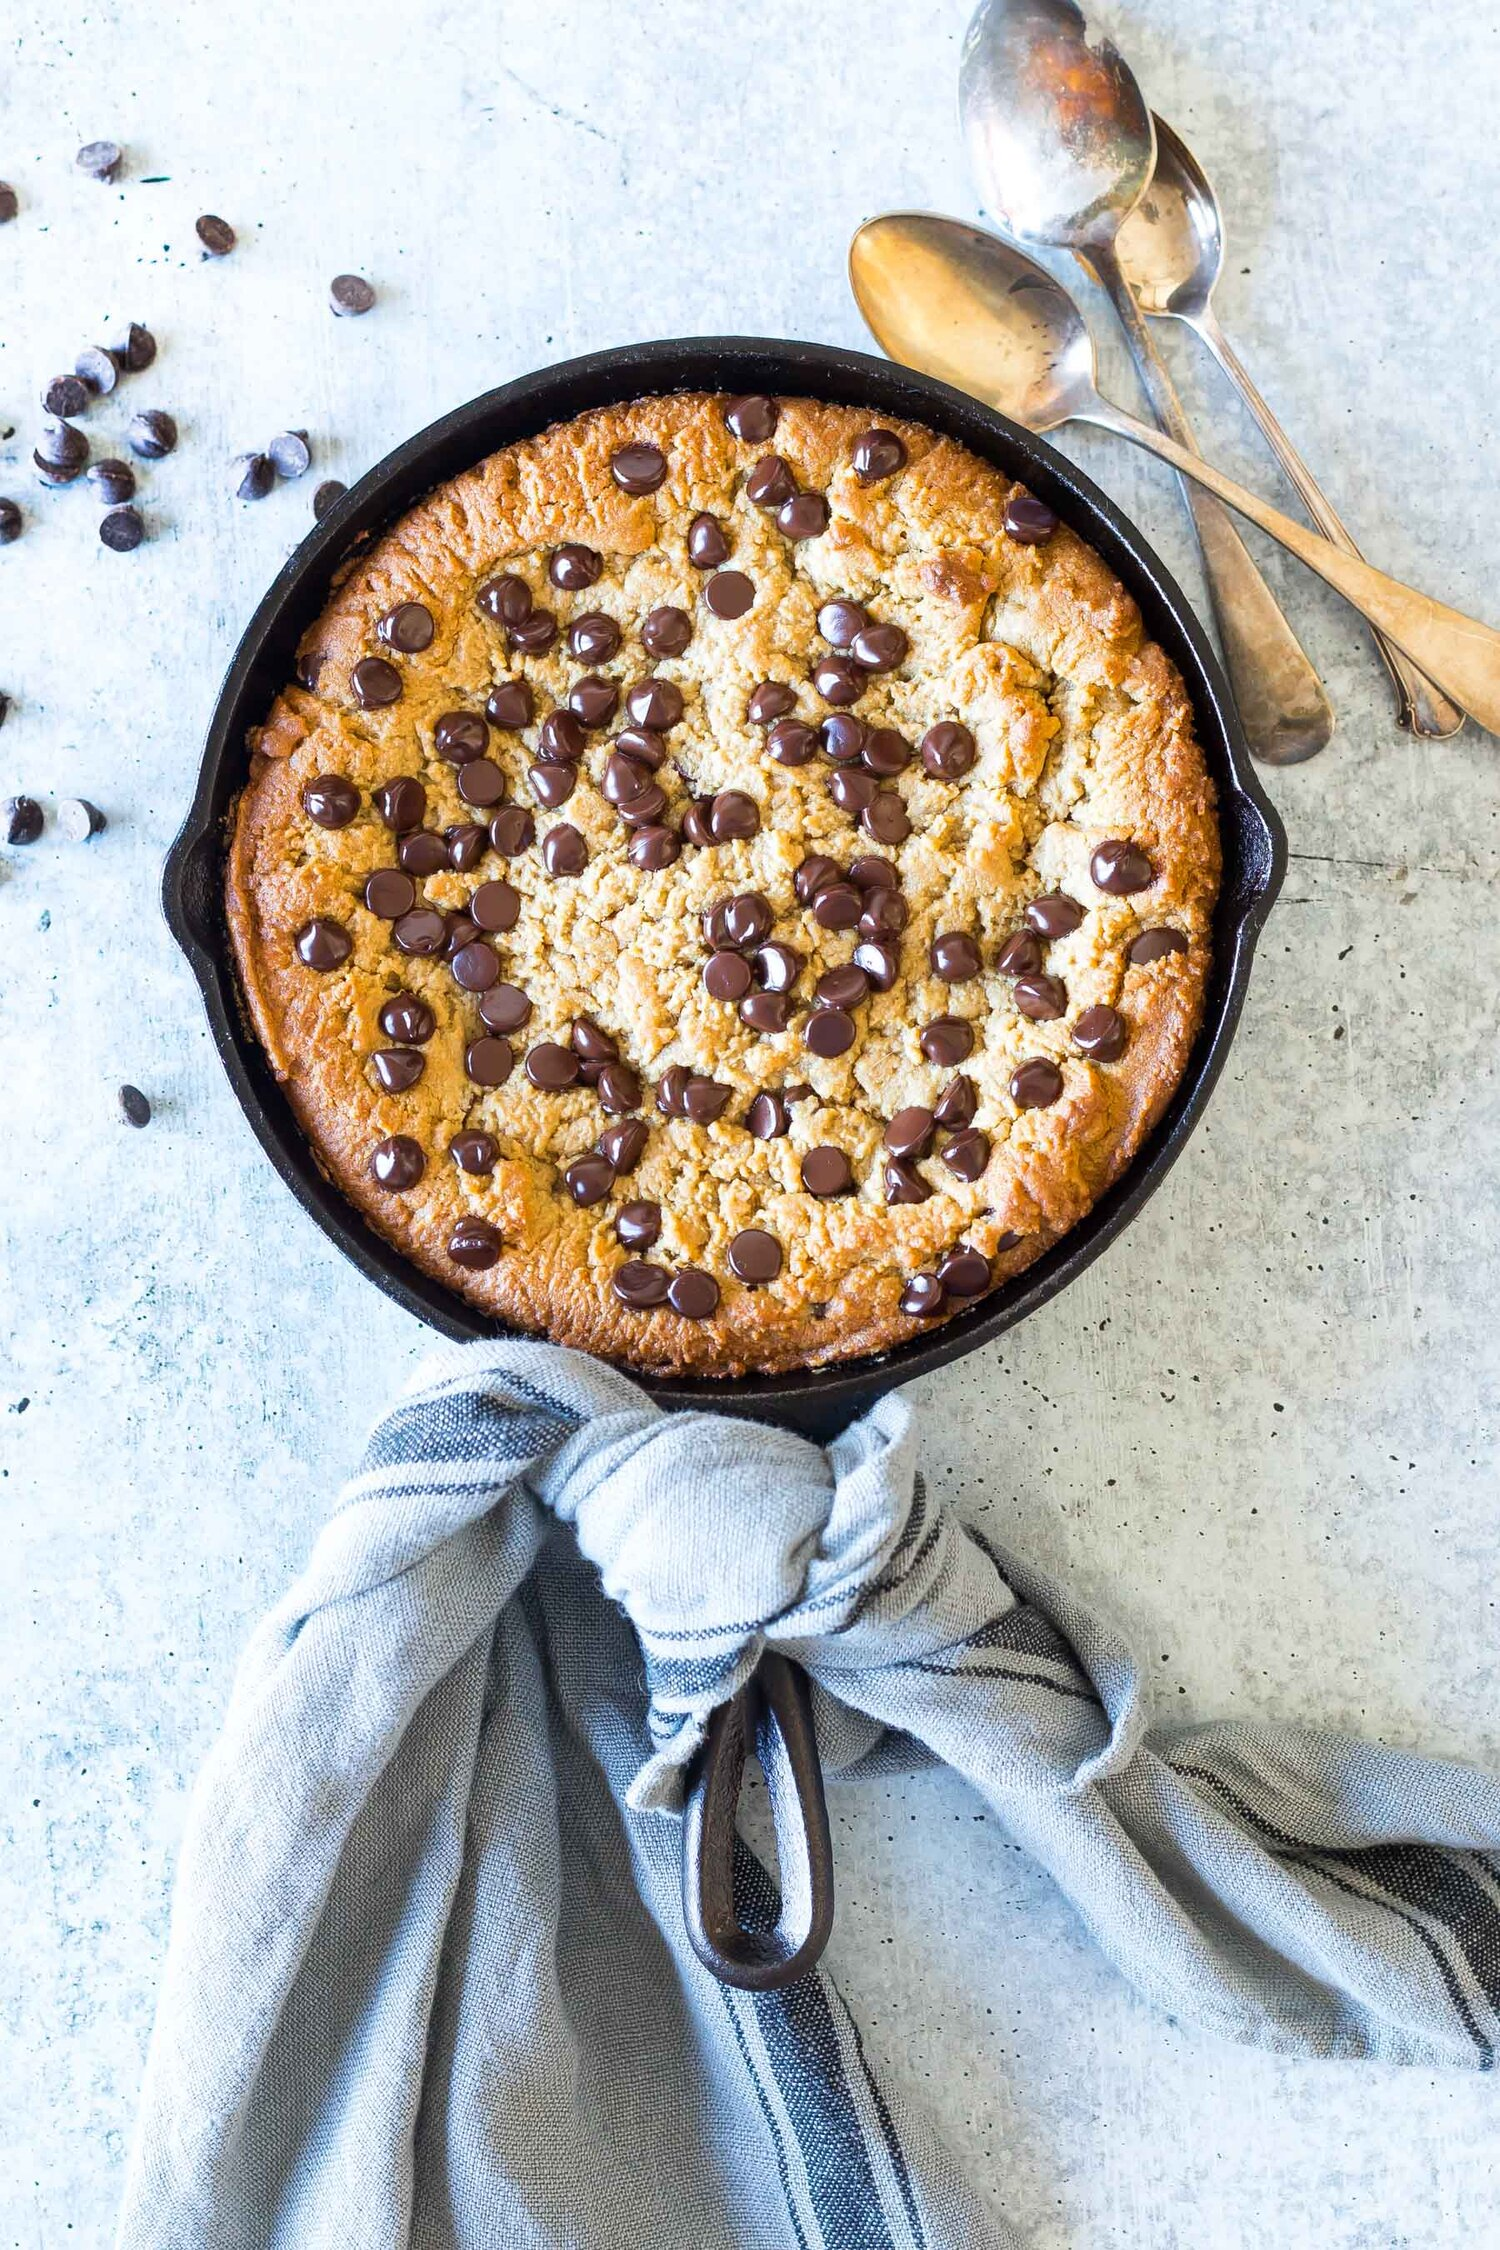 Finished Keto Chocolate Chip Peanut Butter Skillet Cookie in a 8 inch skillet